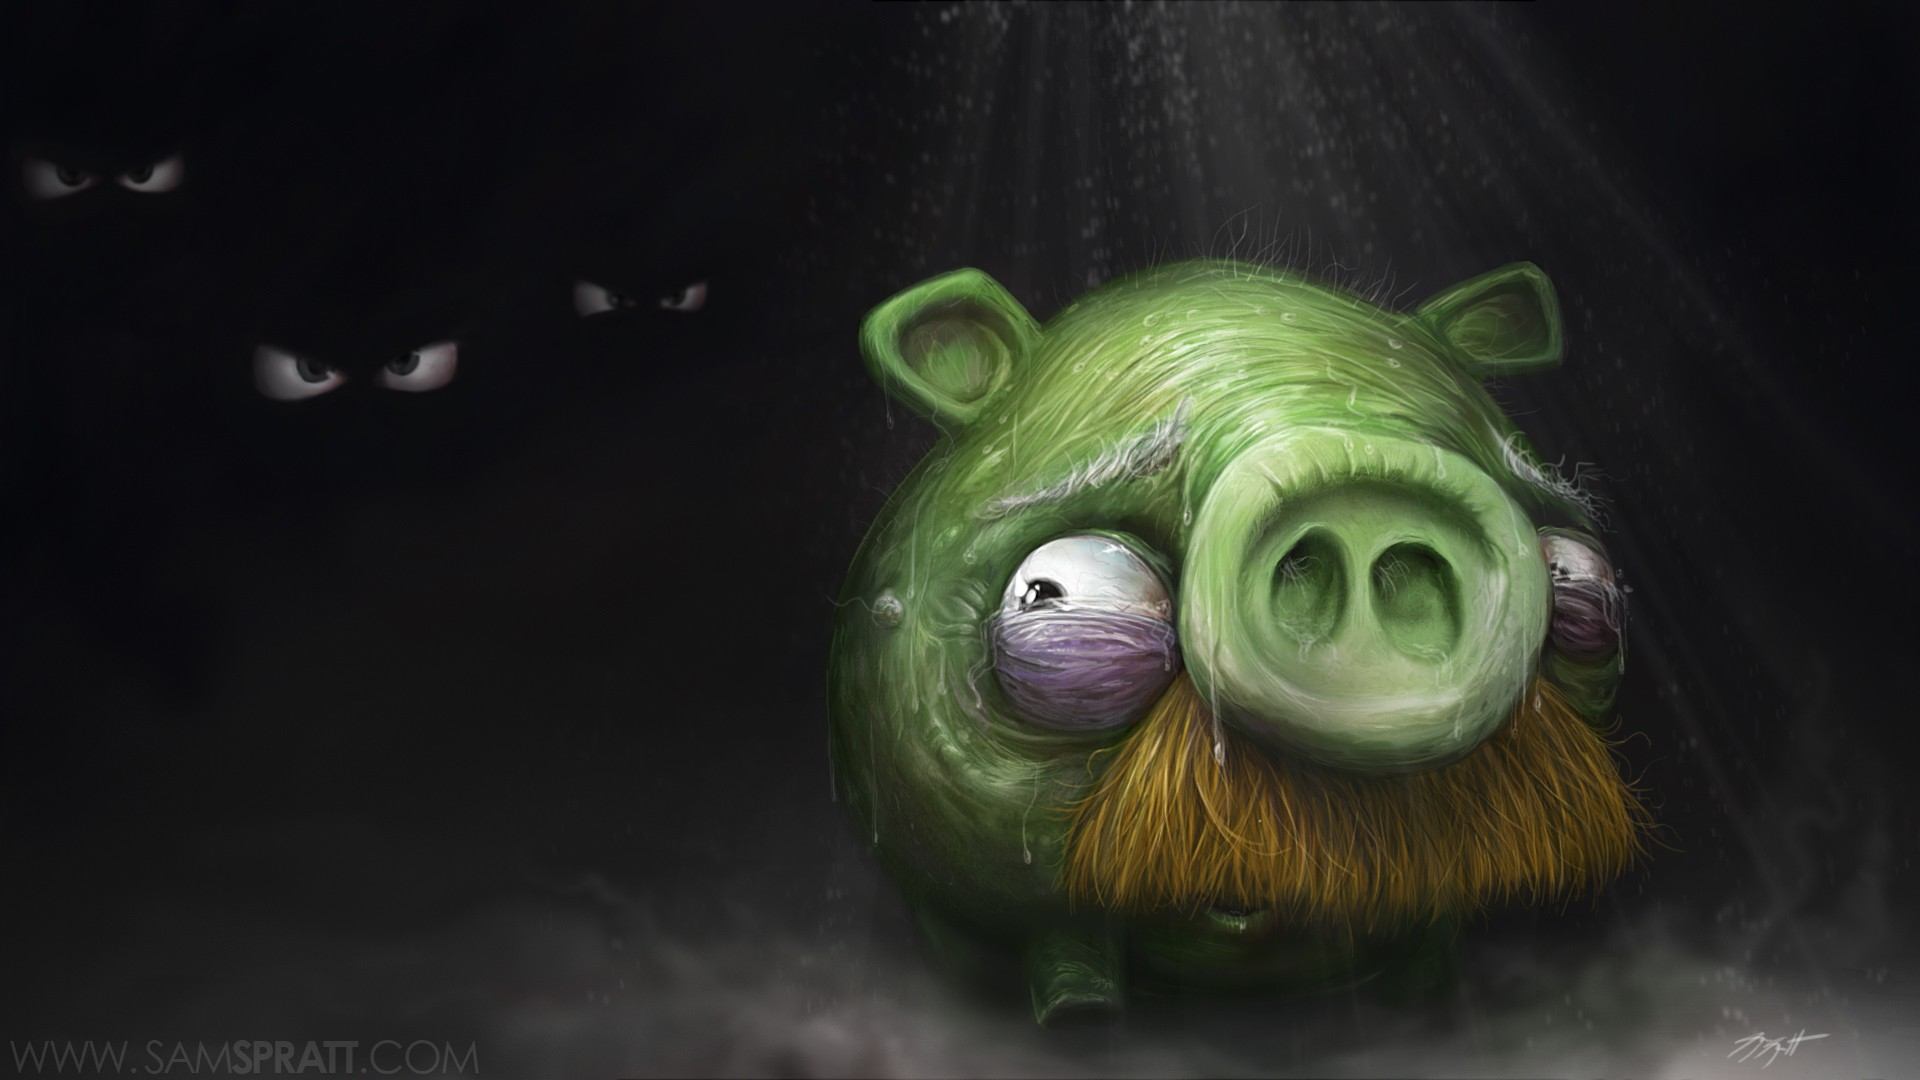 Download the Angry Birds Realism Wallpaper Angry Birds Realism 1920x1080